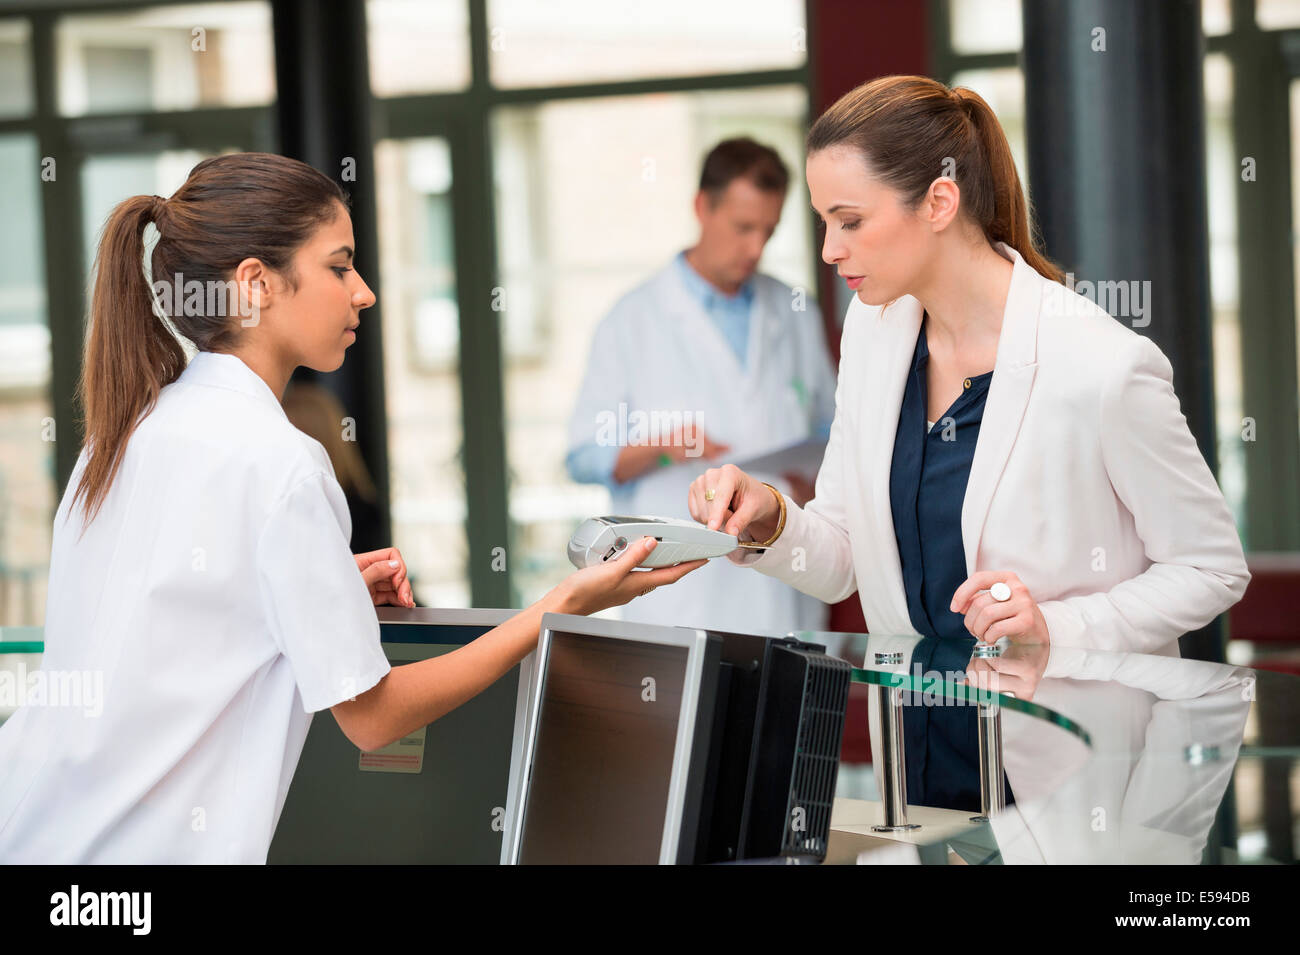 Female doctor making payment with credit card at hospital reception desk Stock Photo